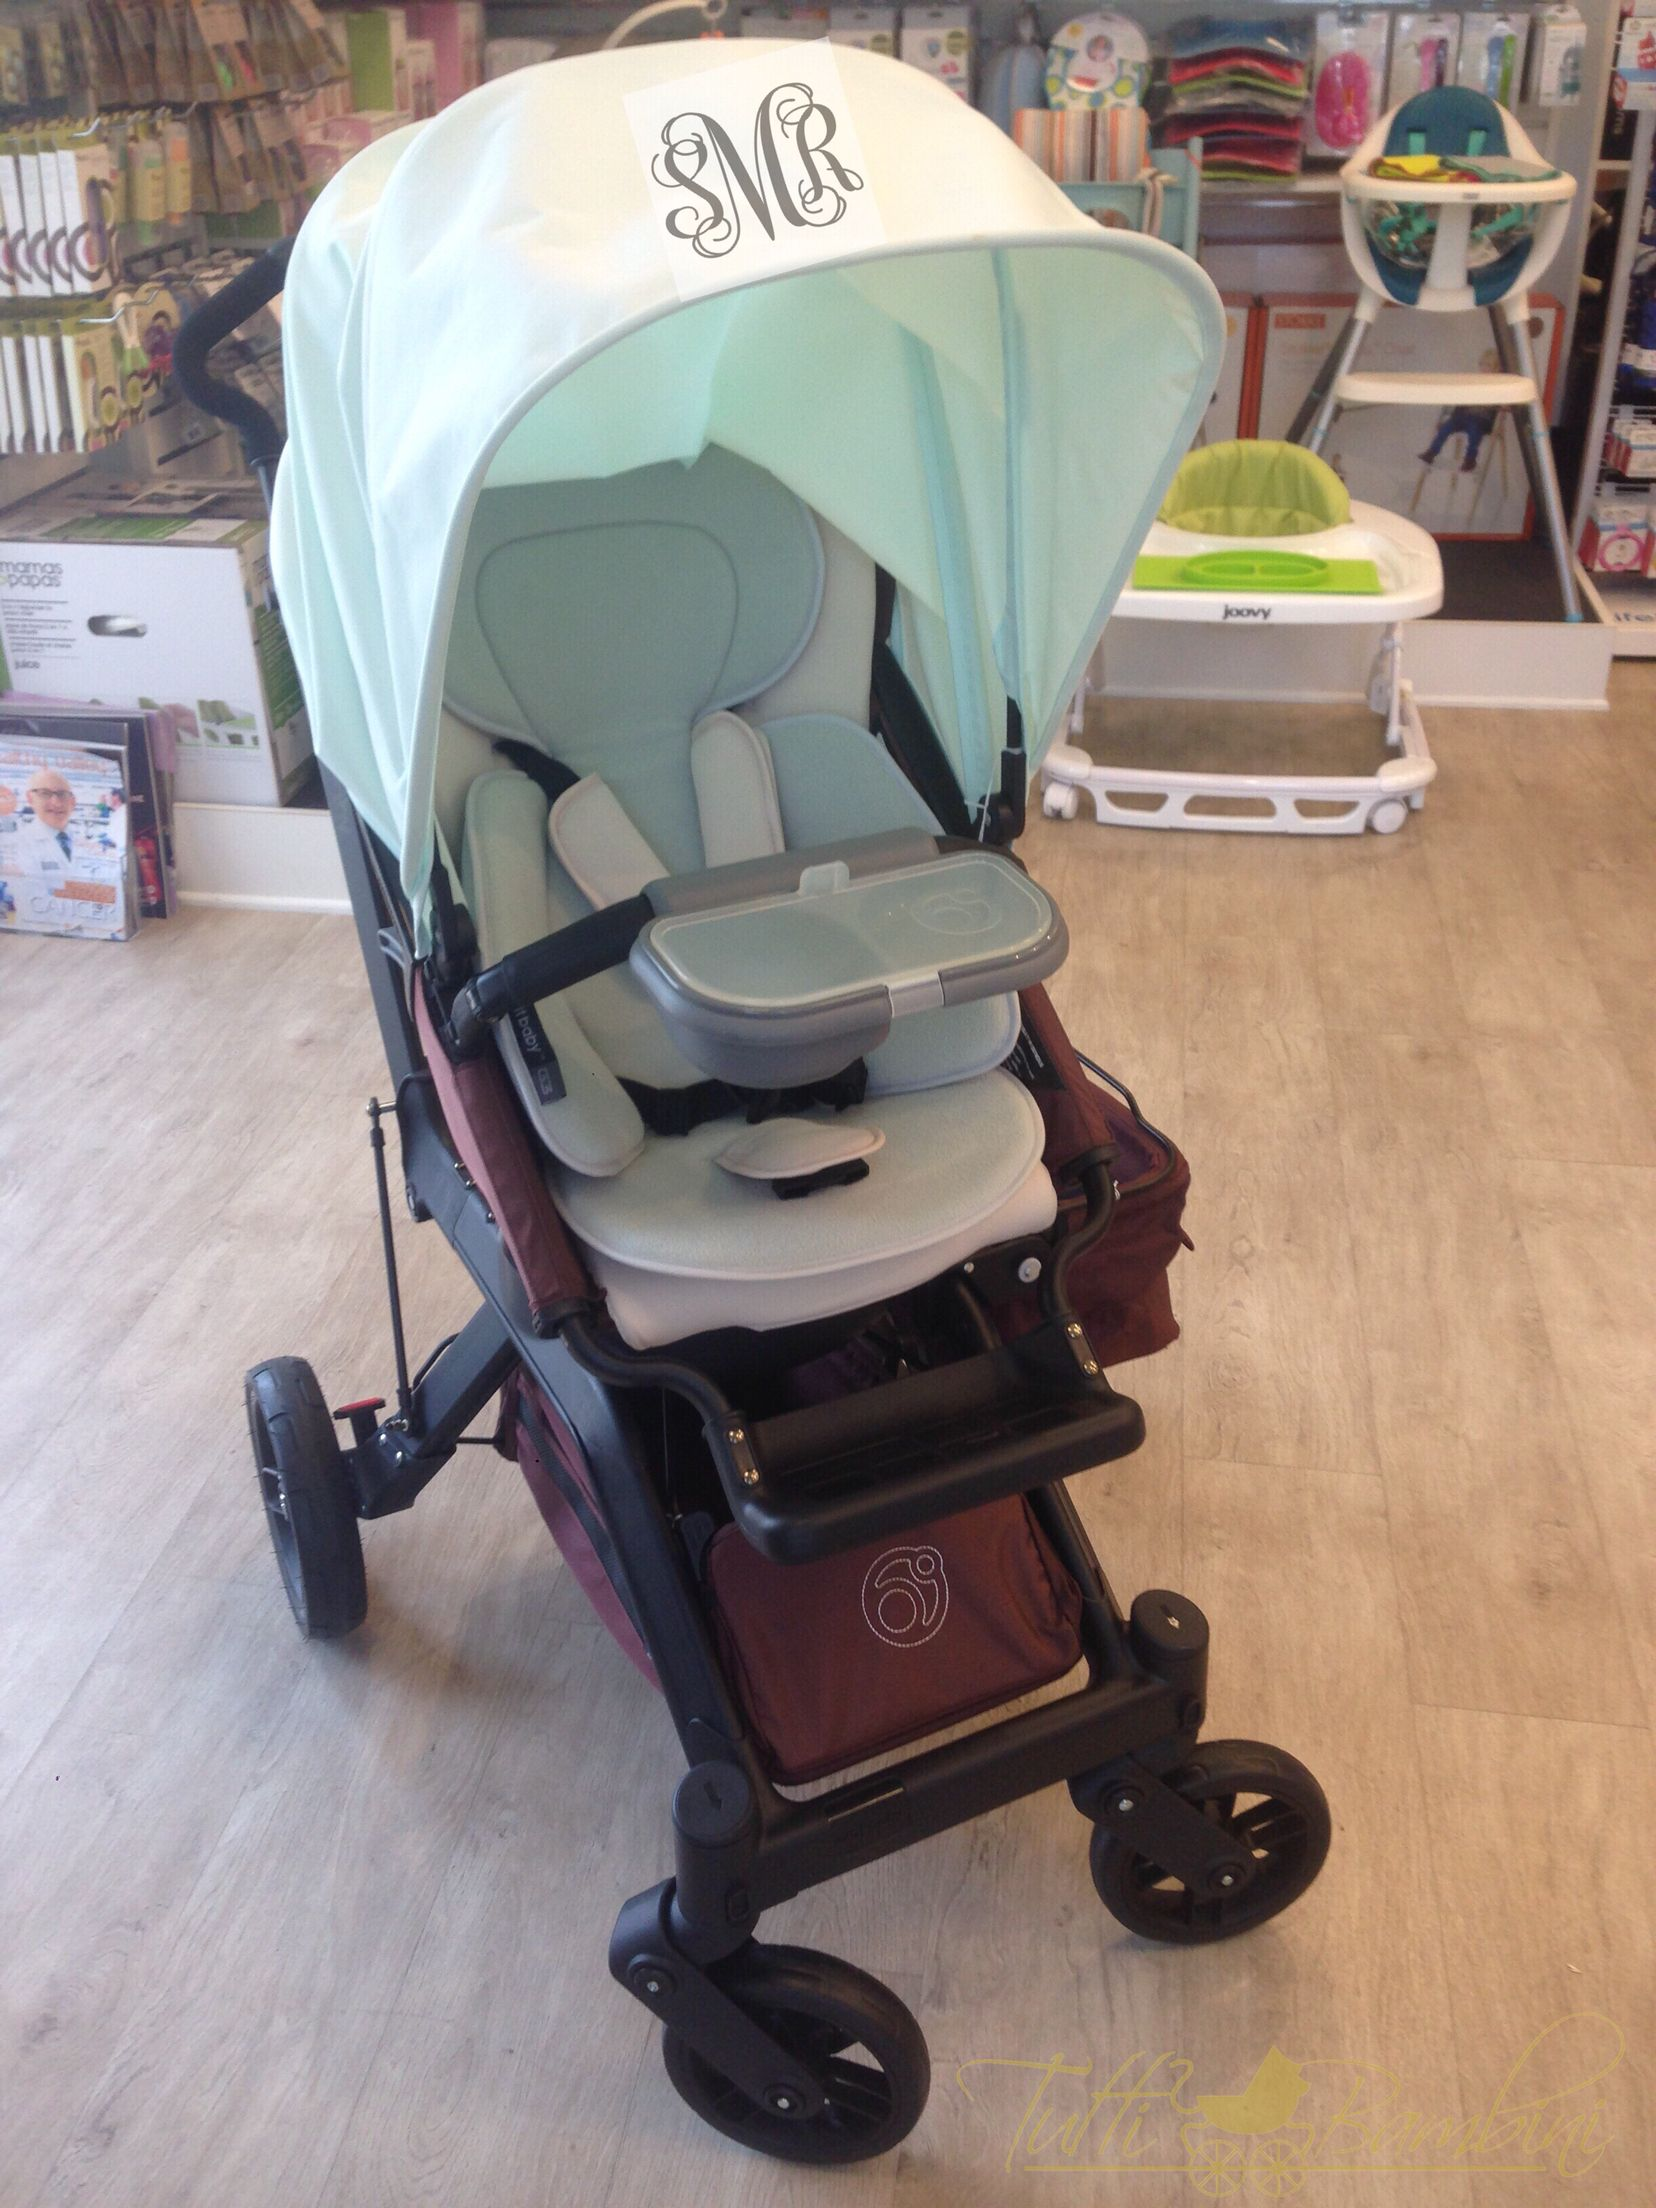 We are a absolutely in love with this monogrammed stroller